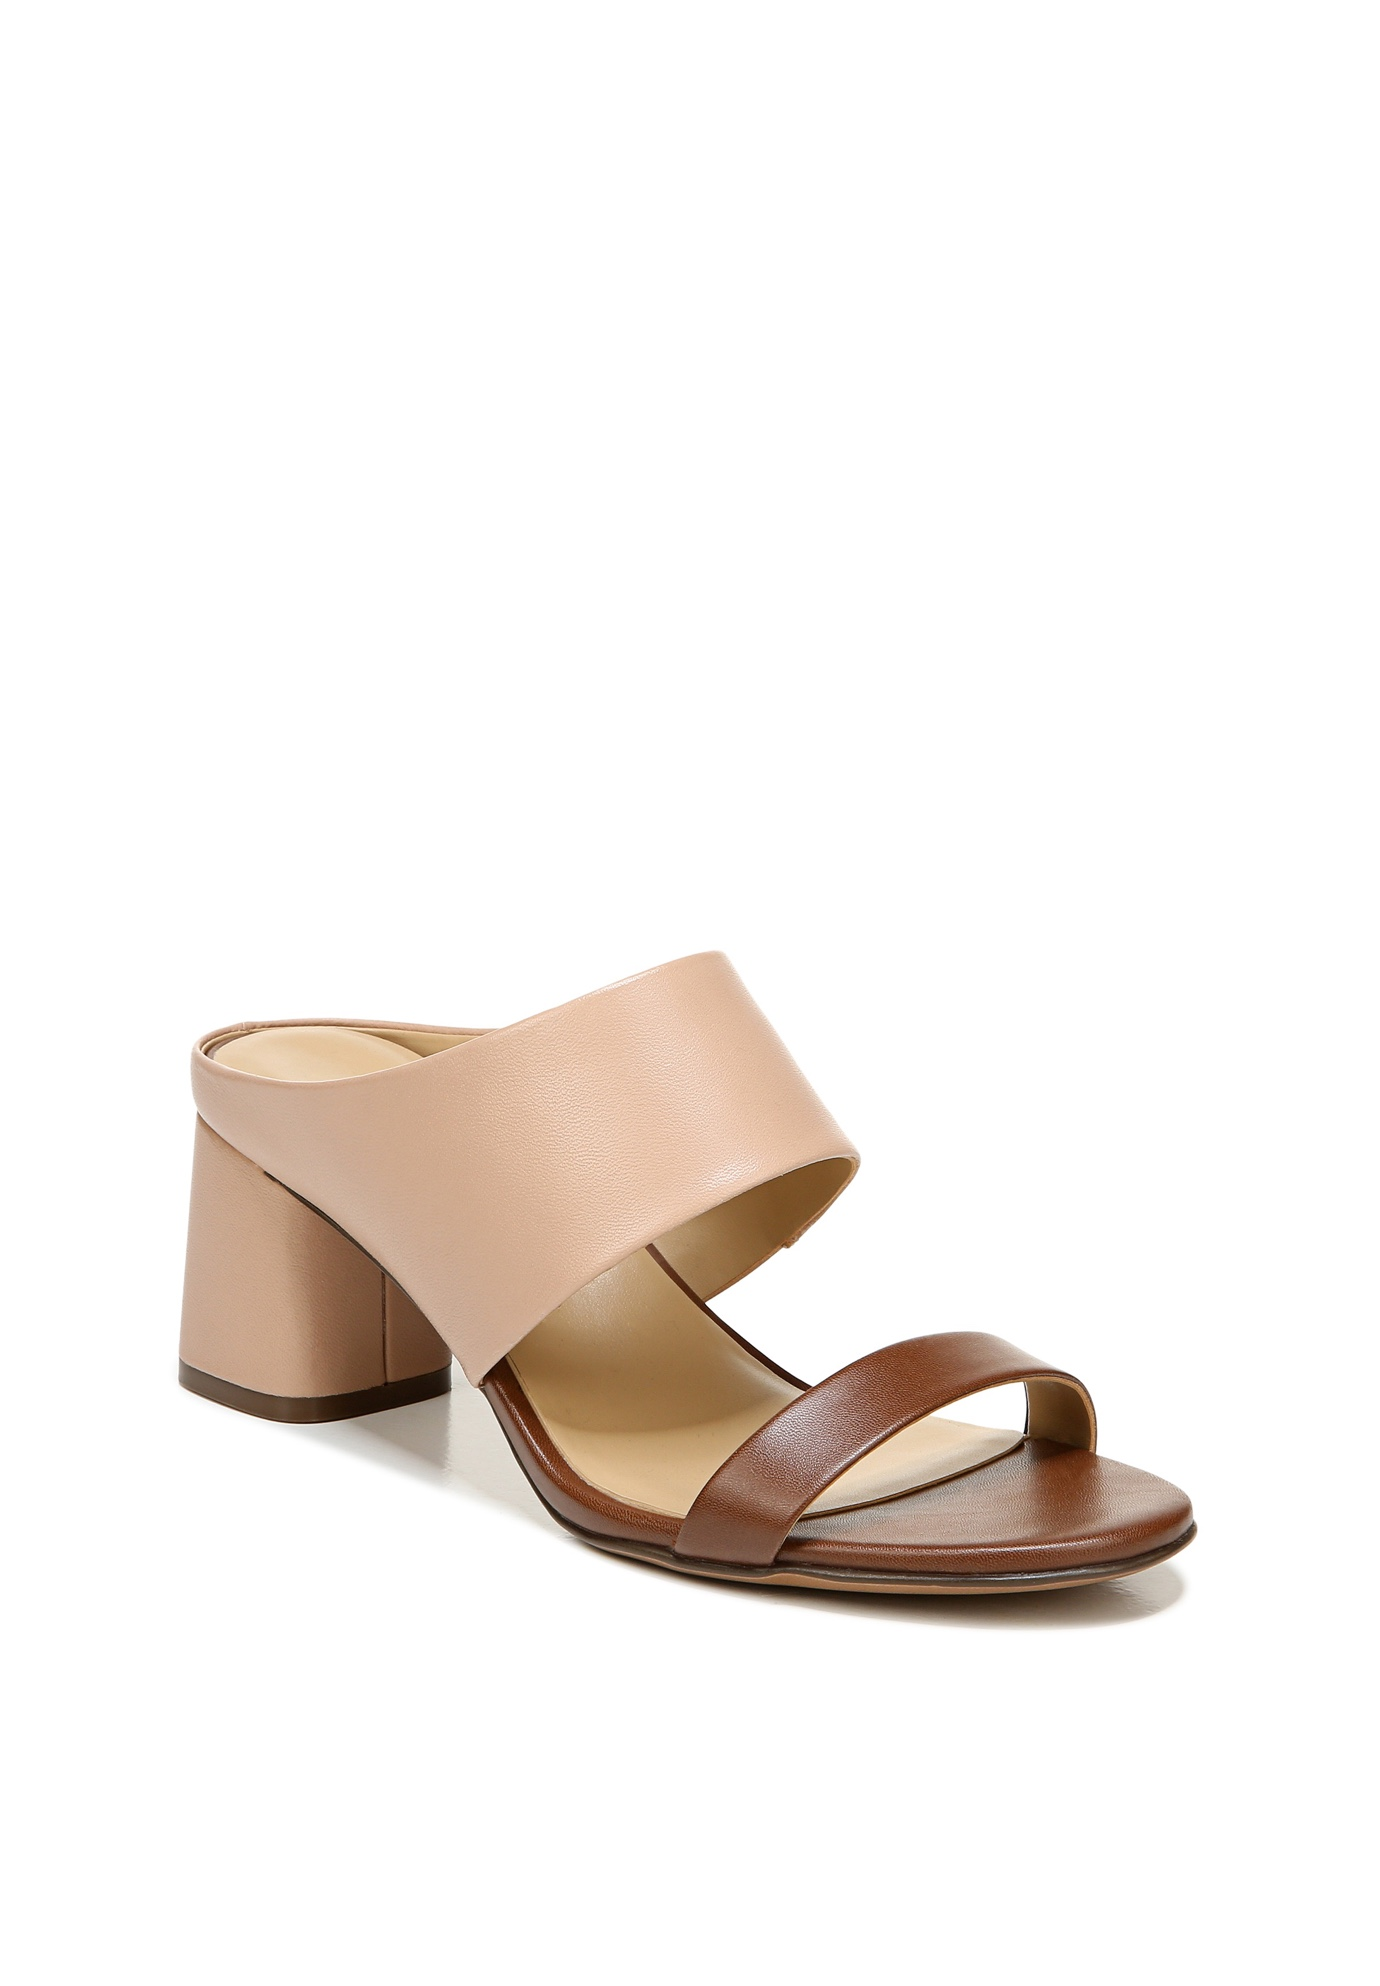 Abbey Sandal by Naturalizer,